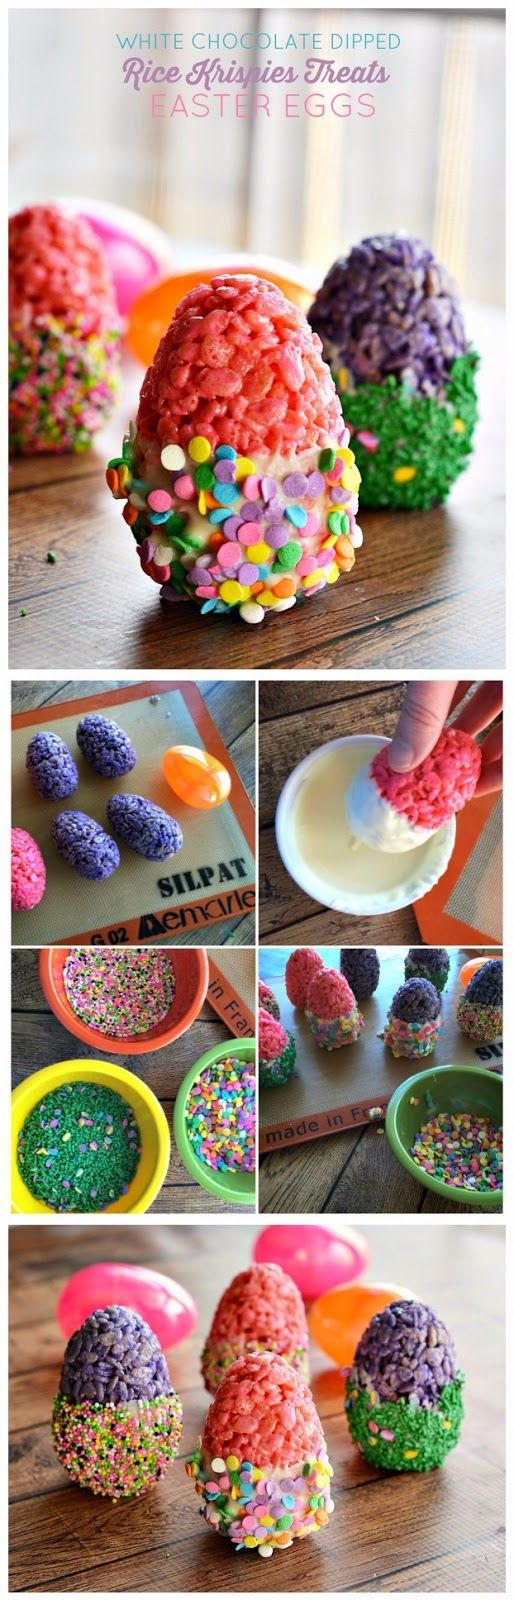 DIPPED & DECORATED RICE KRISPIES TREATS® EGGS